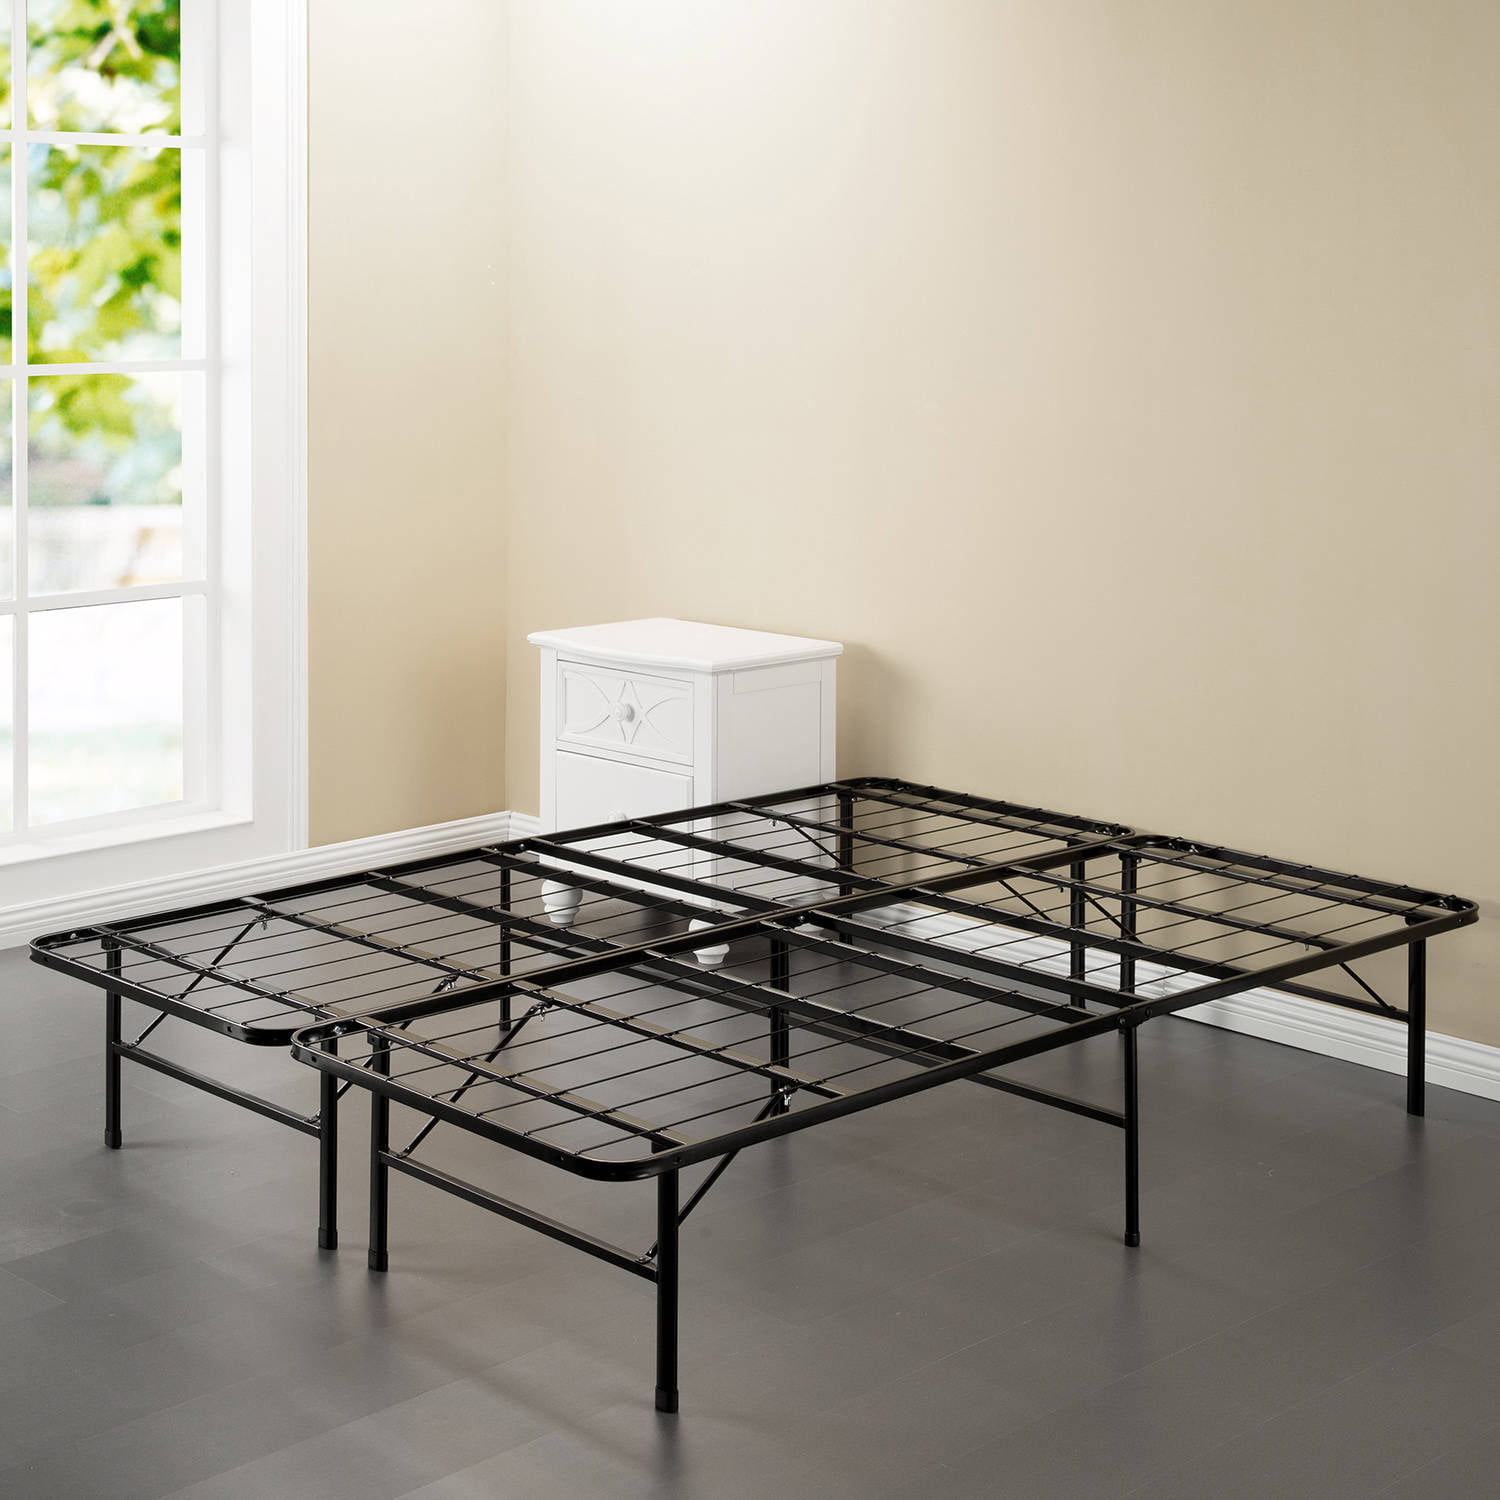 Spa Sensations Steel Smart Base Bed Frame Black, Multiple Sizes -  Walmart.com